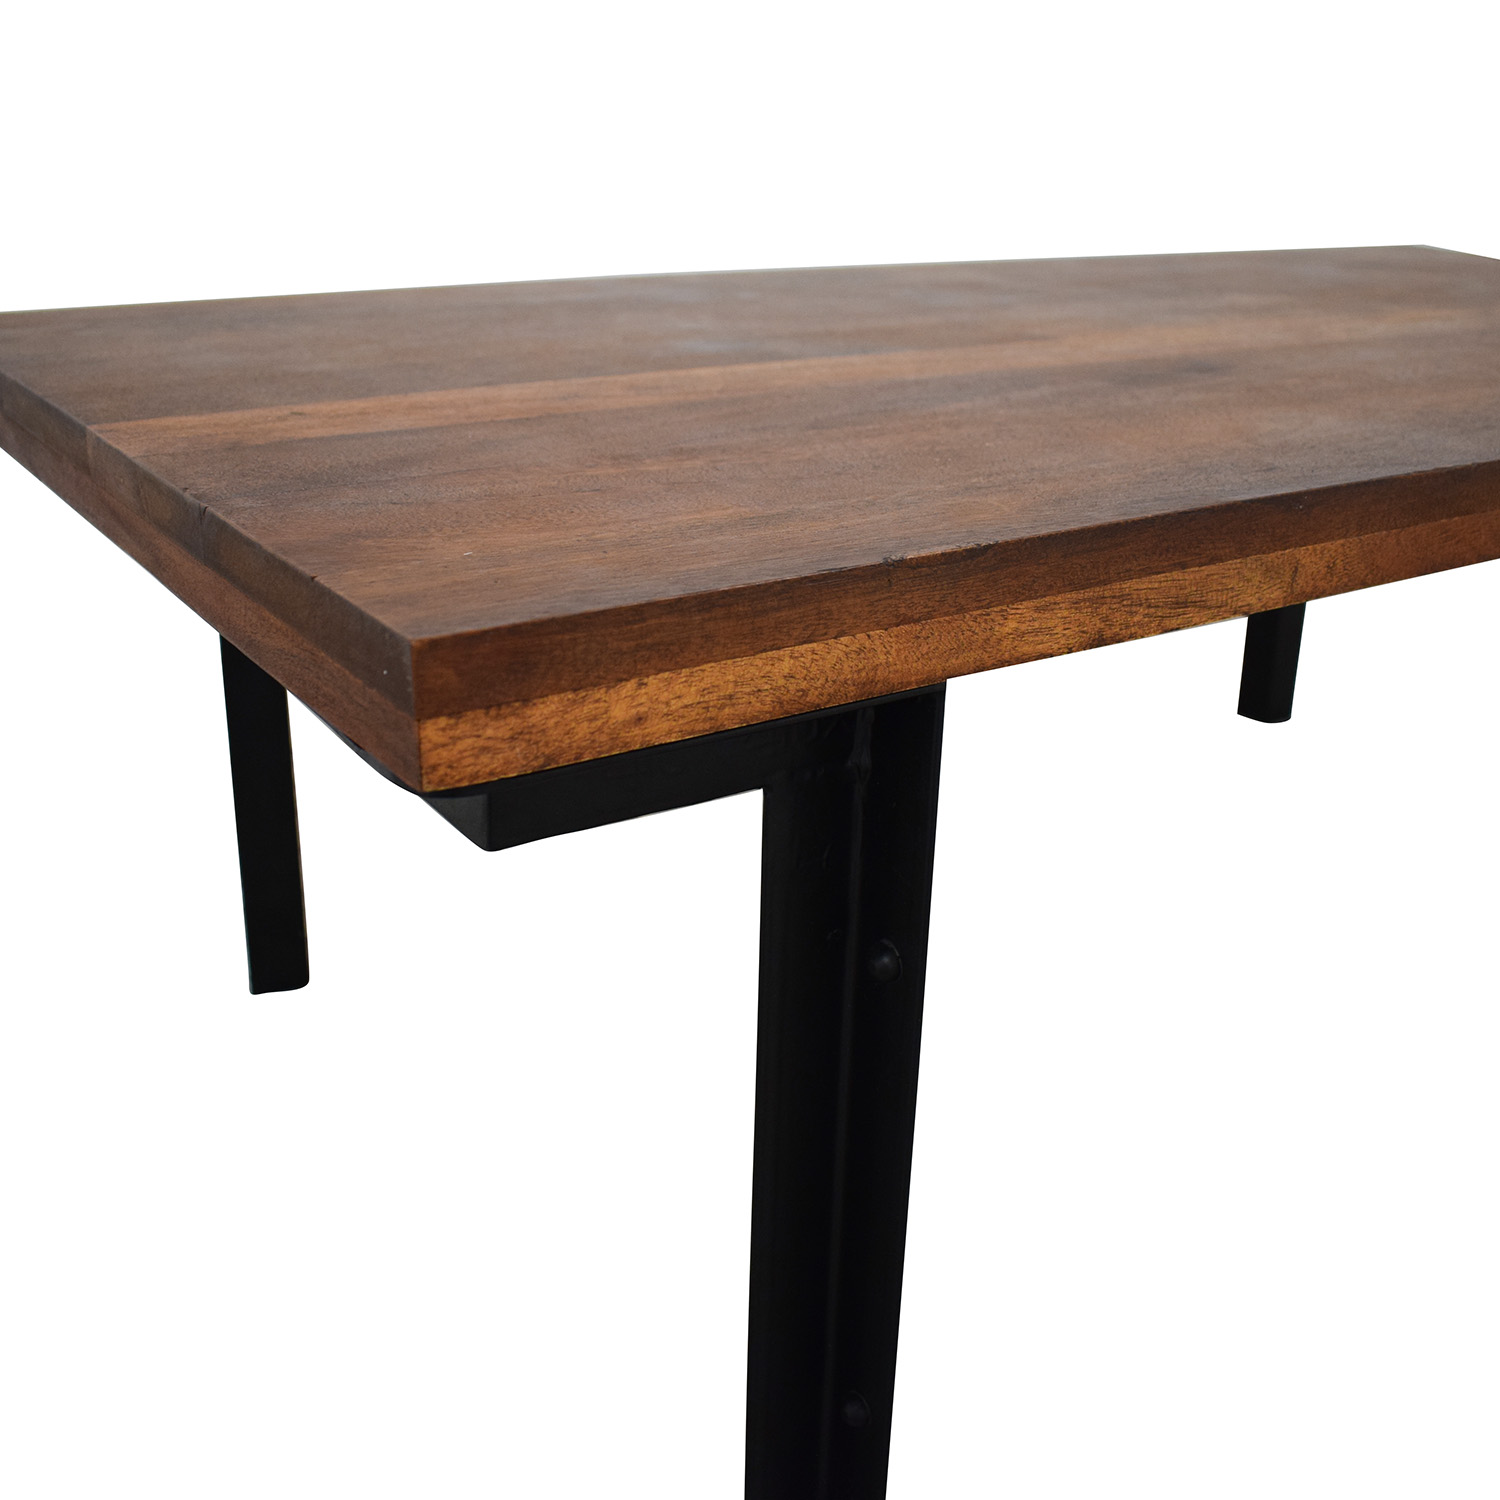 buy West Elm West Elm Industrial Coffee Table online